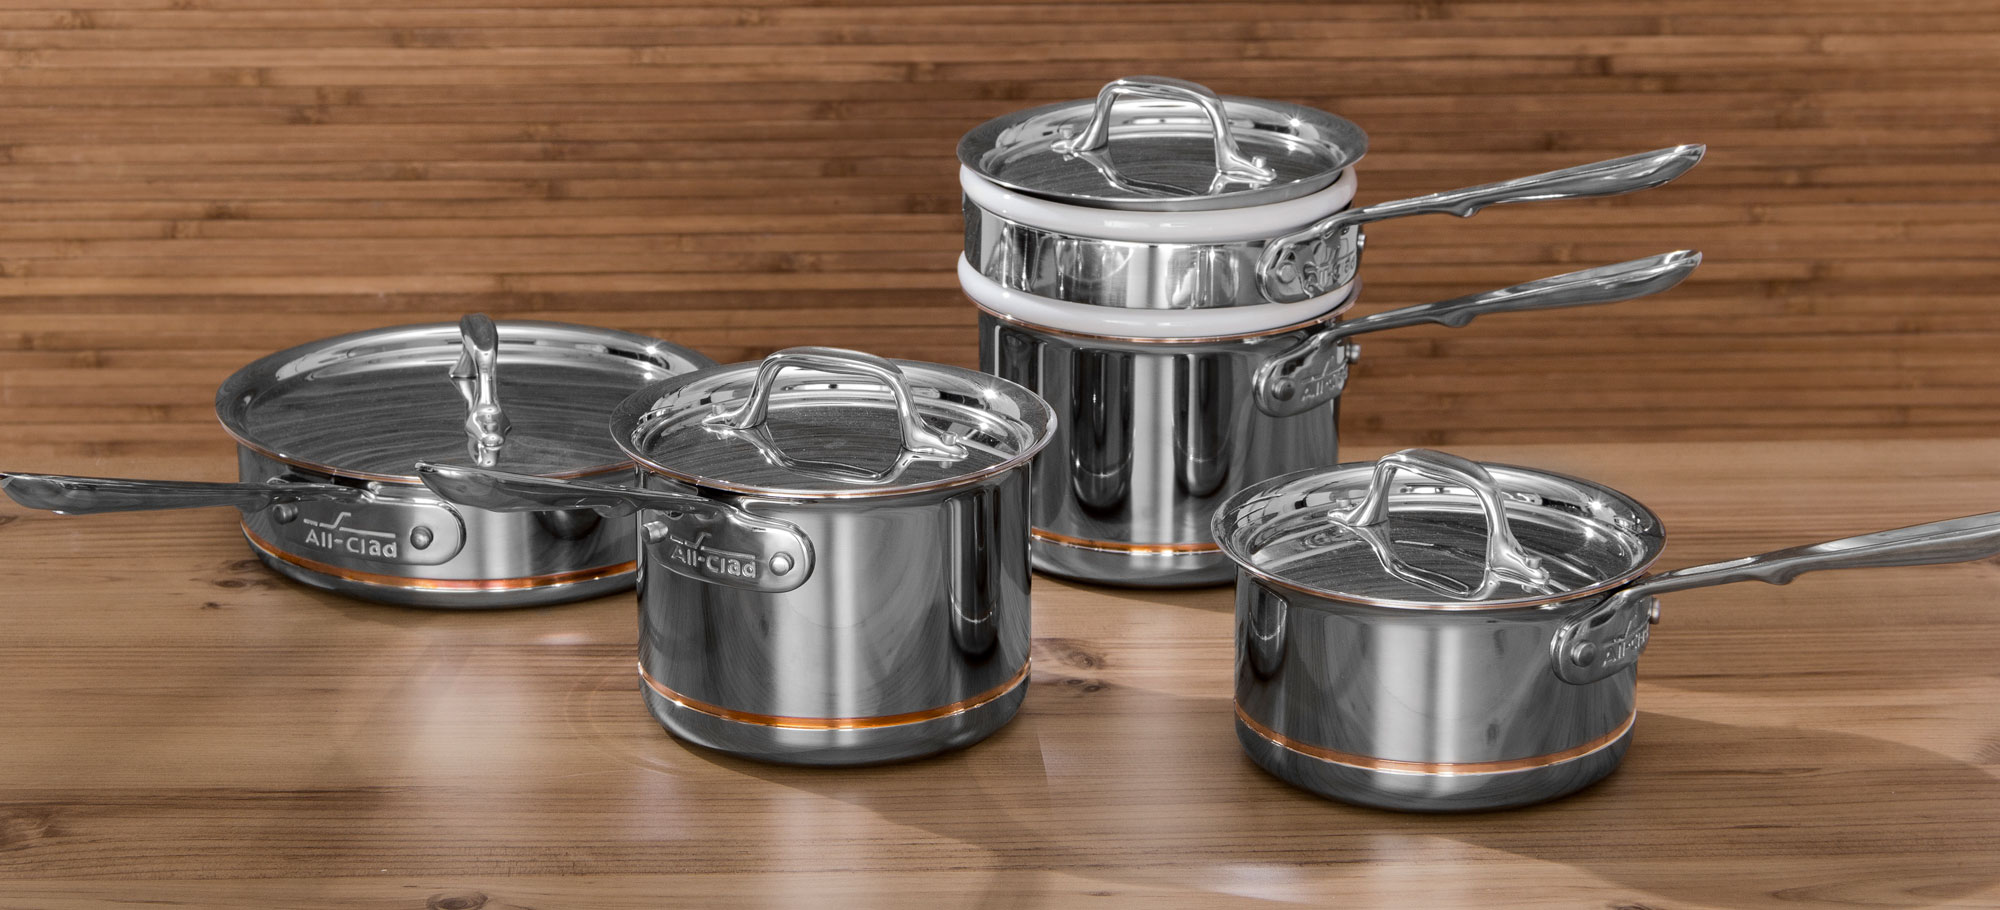 All Clad Copper Core Review The Best Cookware Set Period On The